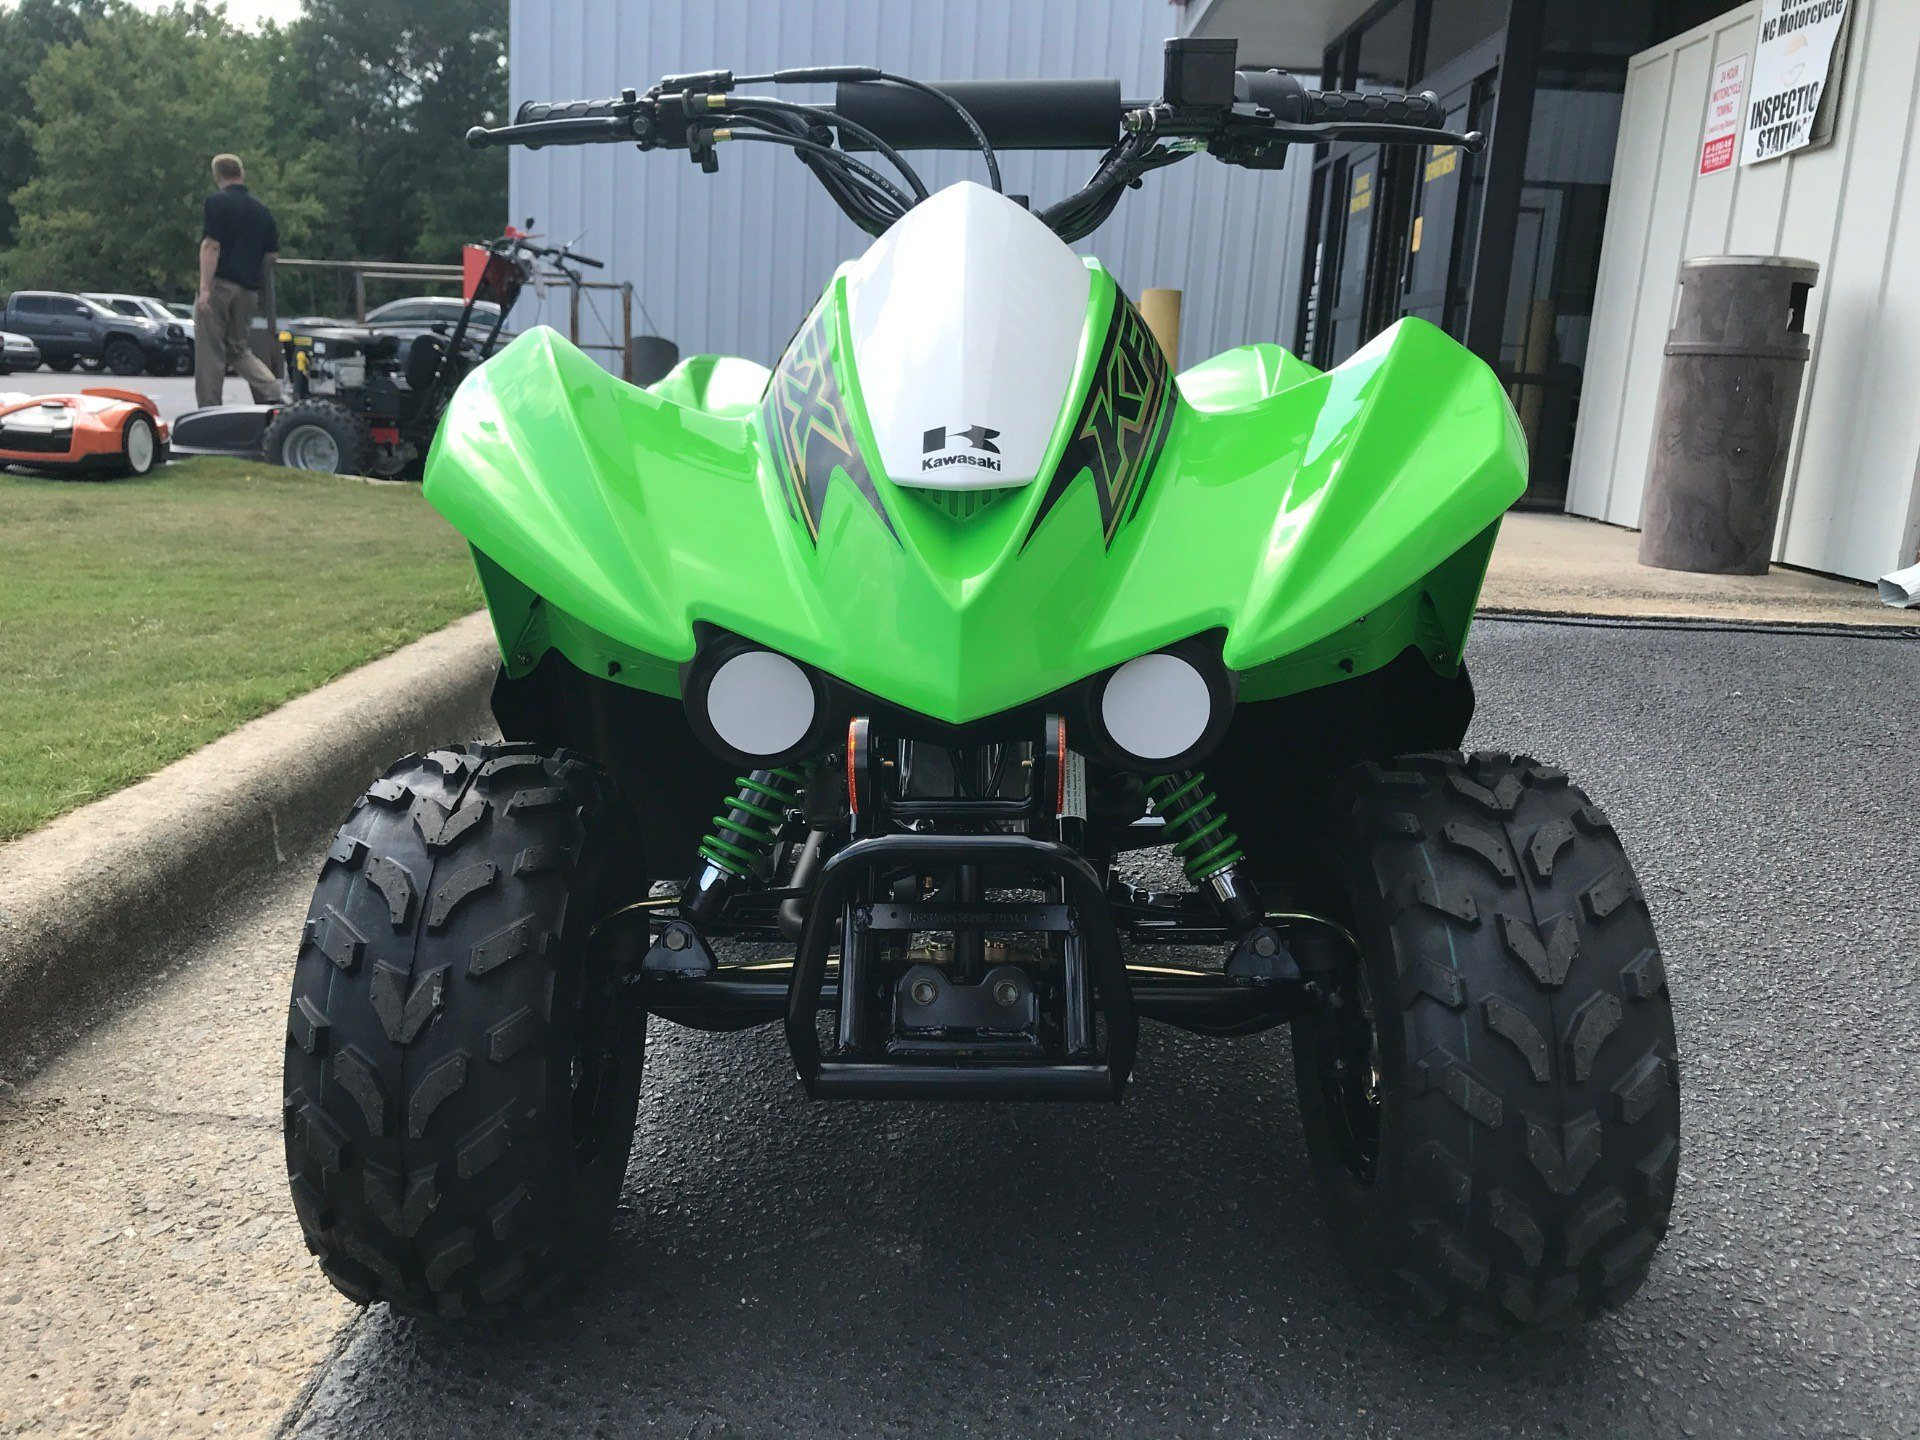 2021 Kawasaki KFX 50 in Greenville, North Carolina - Photo 3